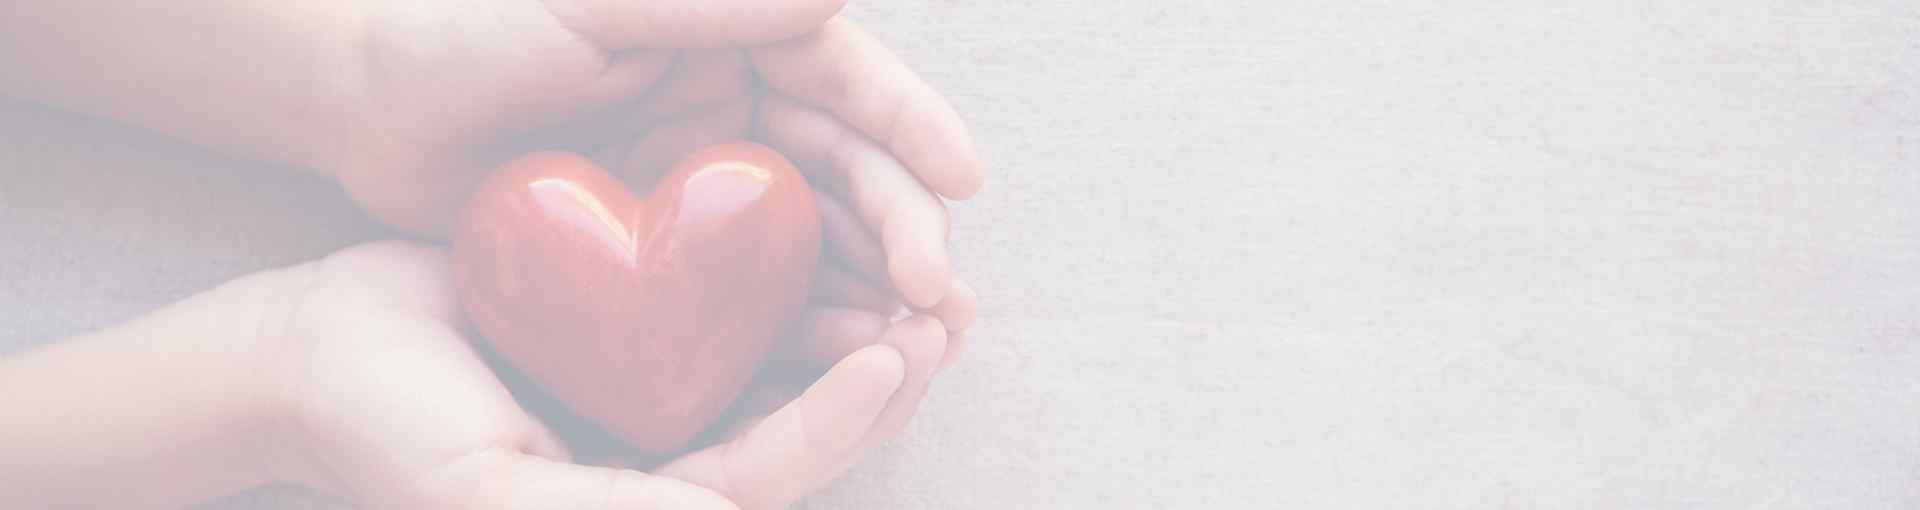 a healthy heart in hands